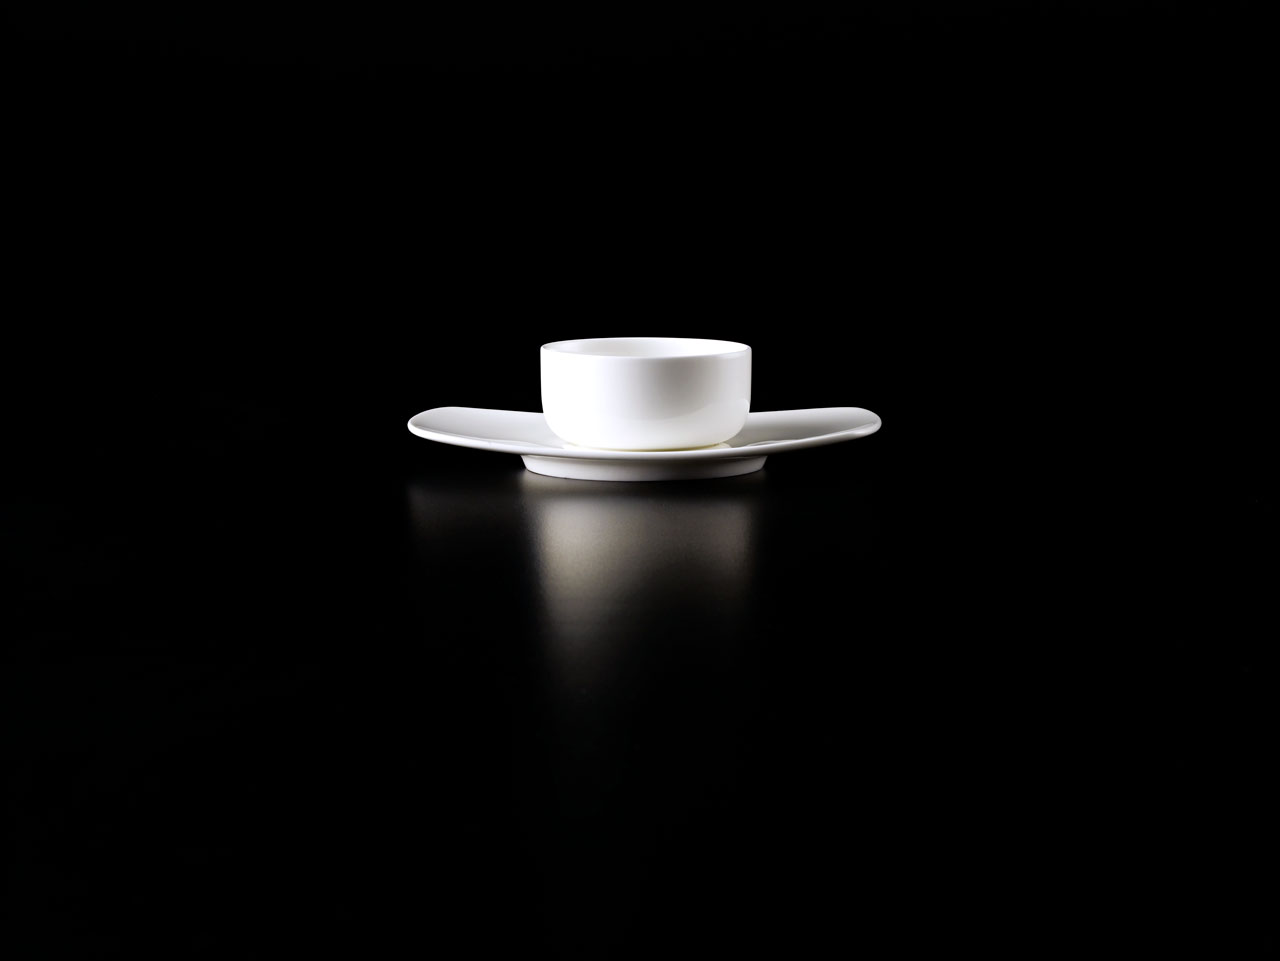 Bent Brandt - TABL white bone china S2 bowl on S1 saucer